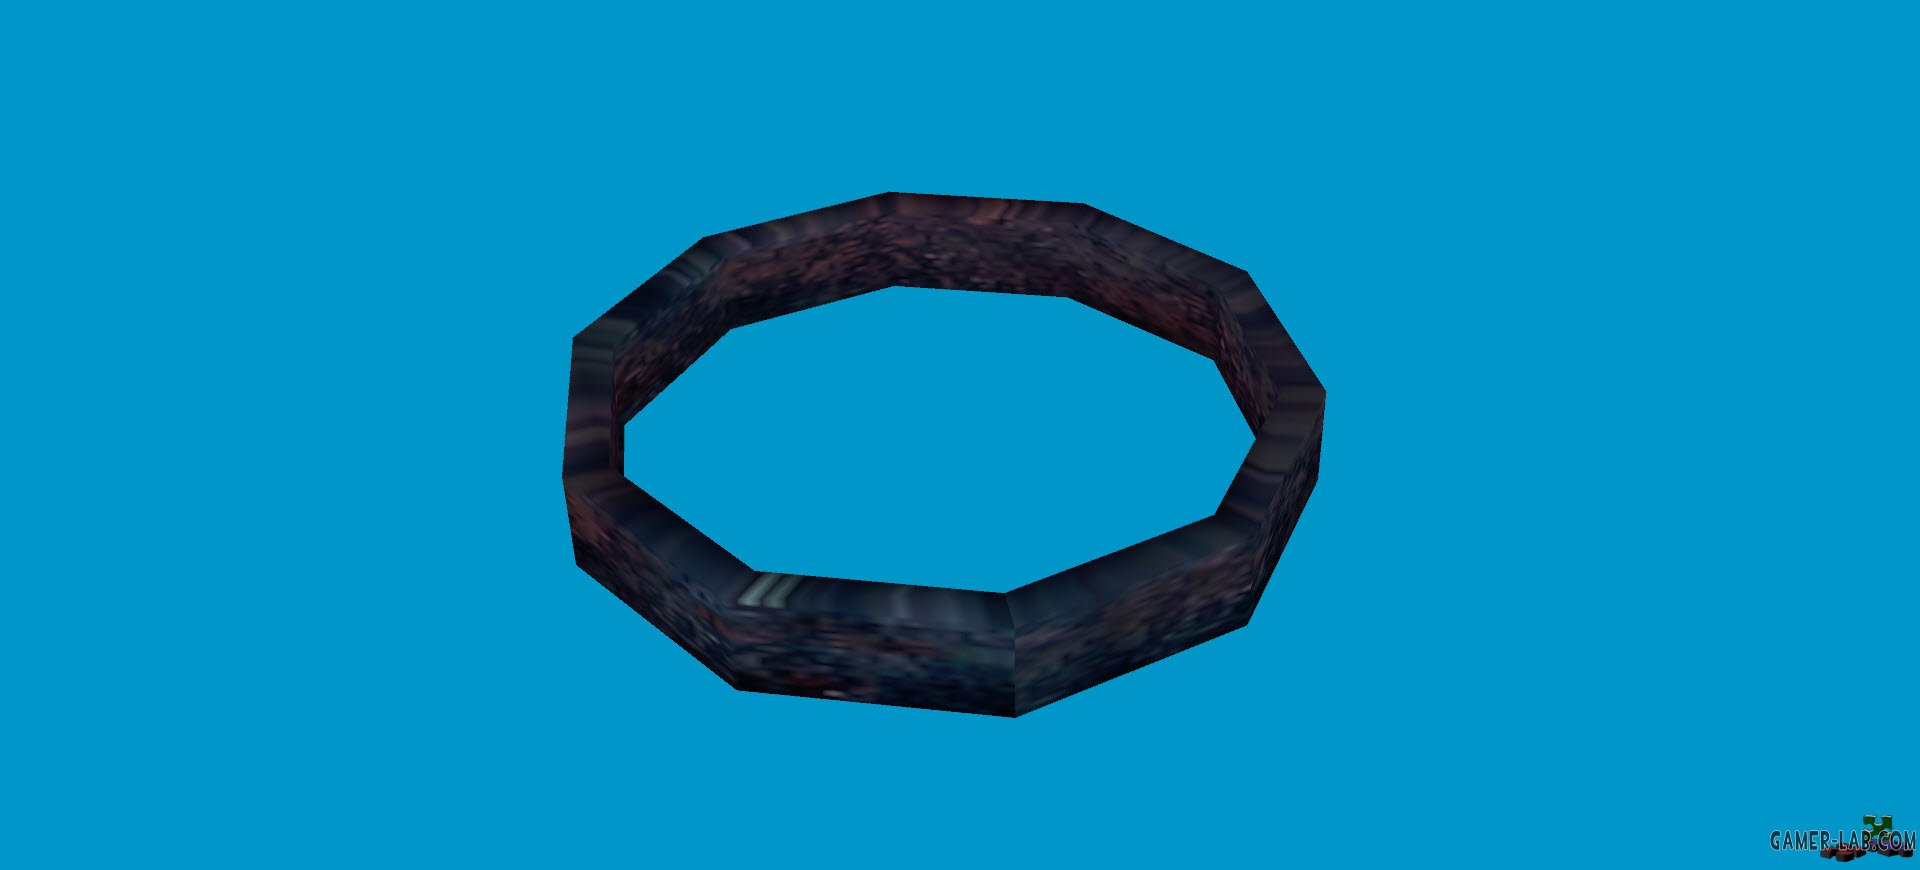 bt_barrel1_ring1